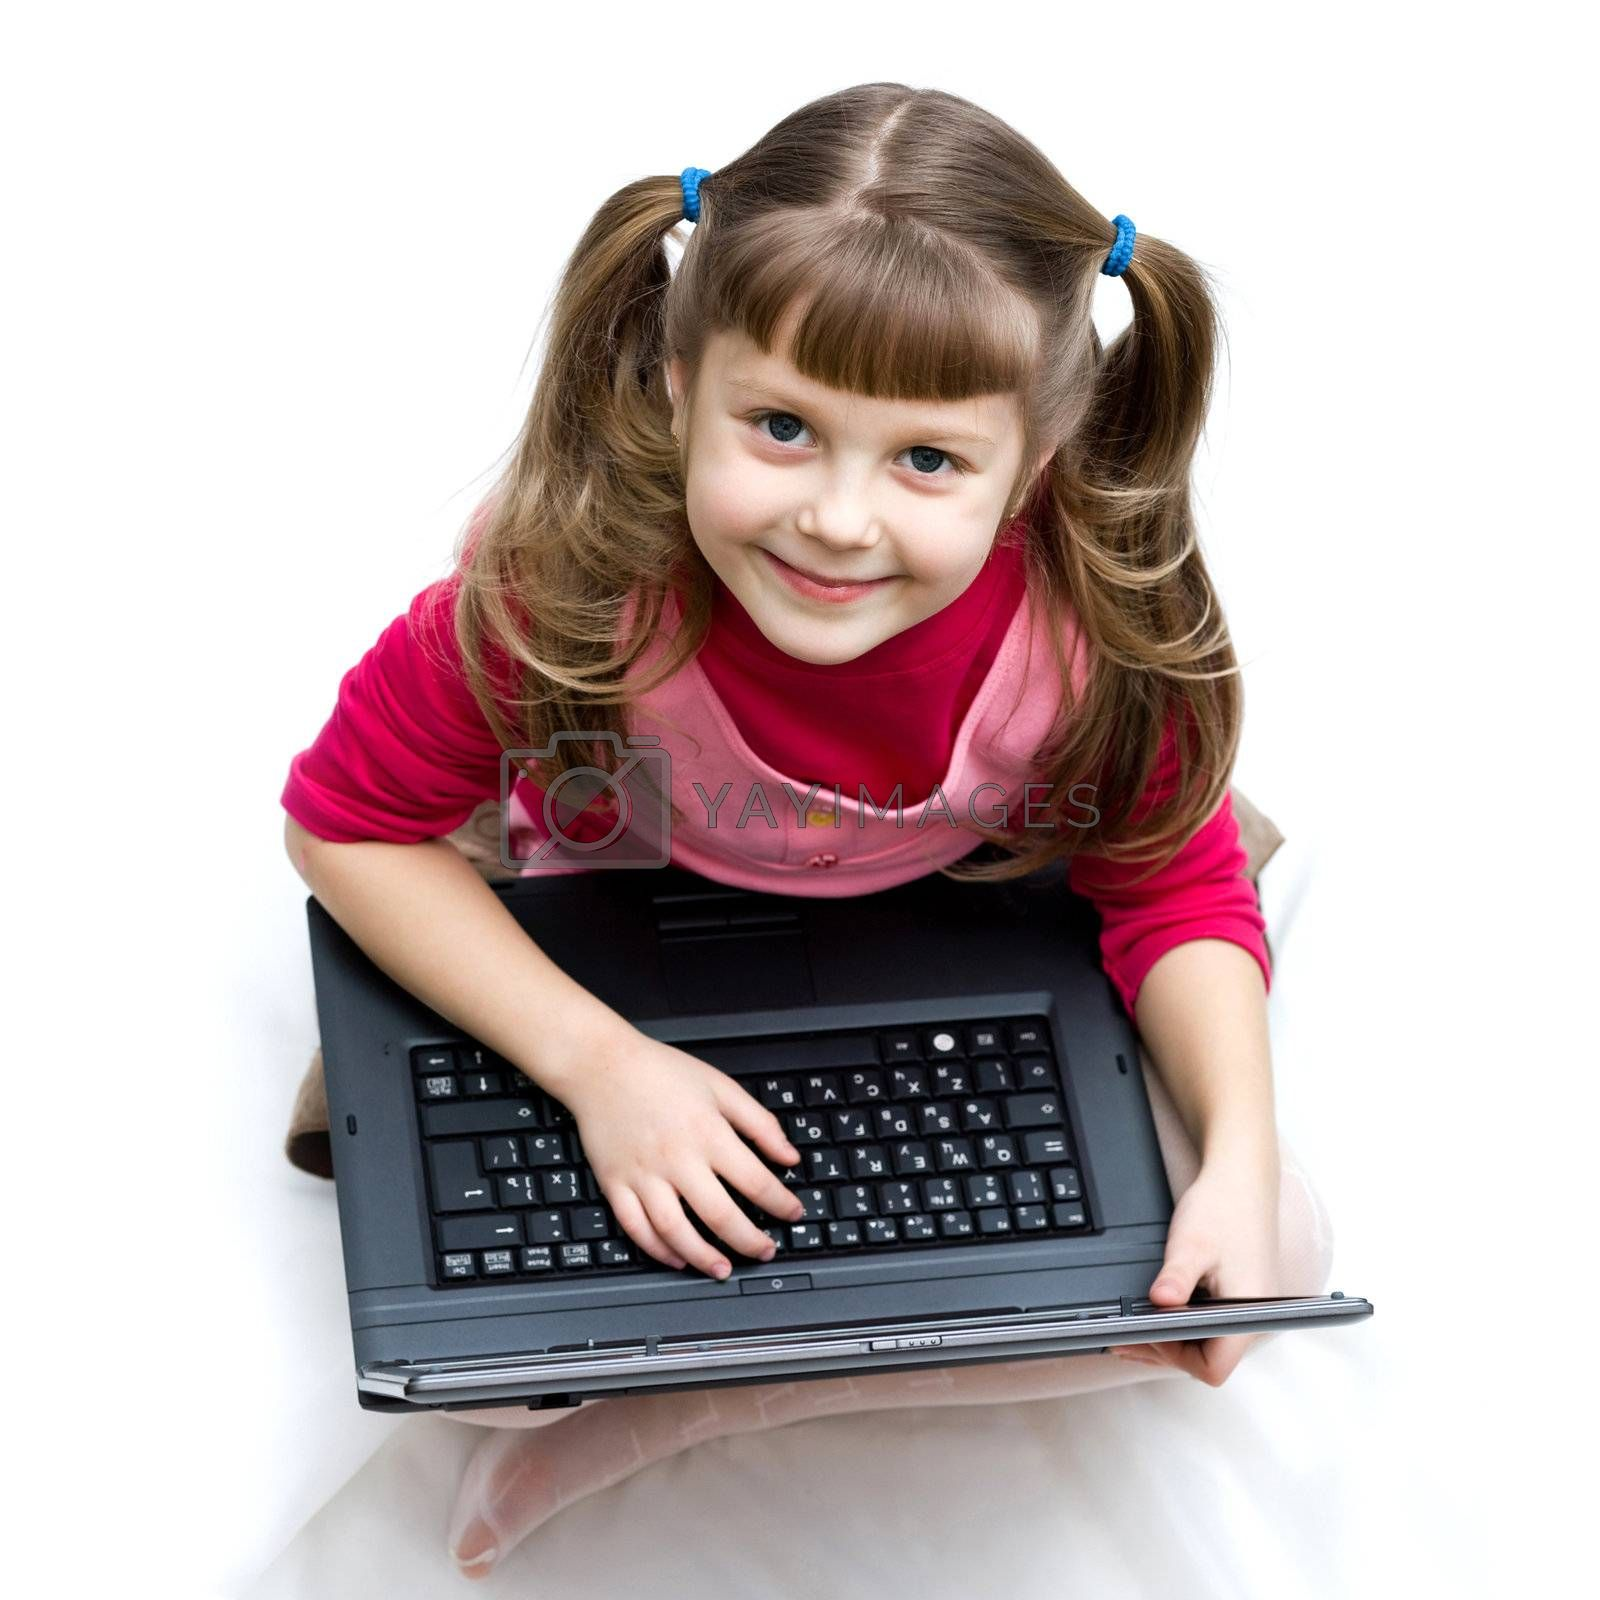 An image of a little girl with laptop sitting on the floor